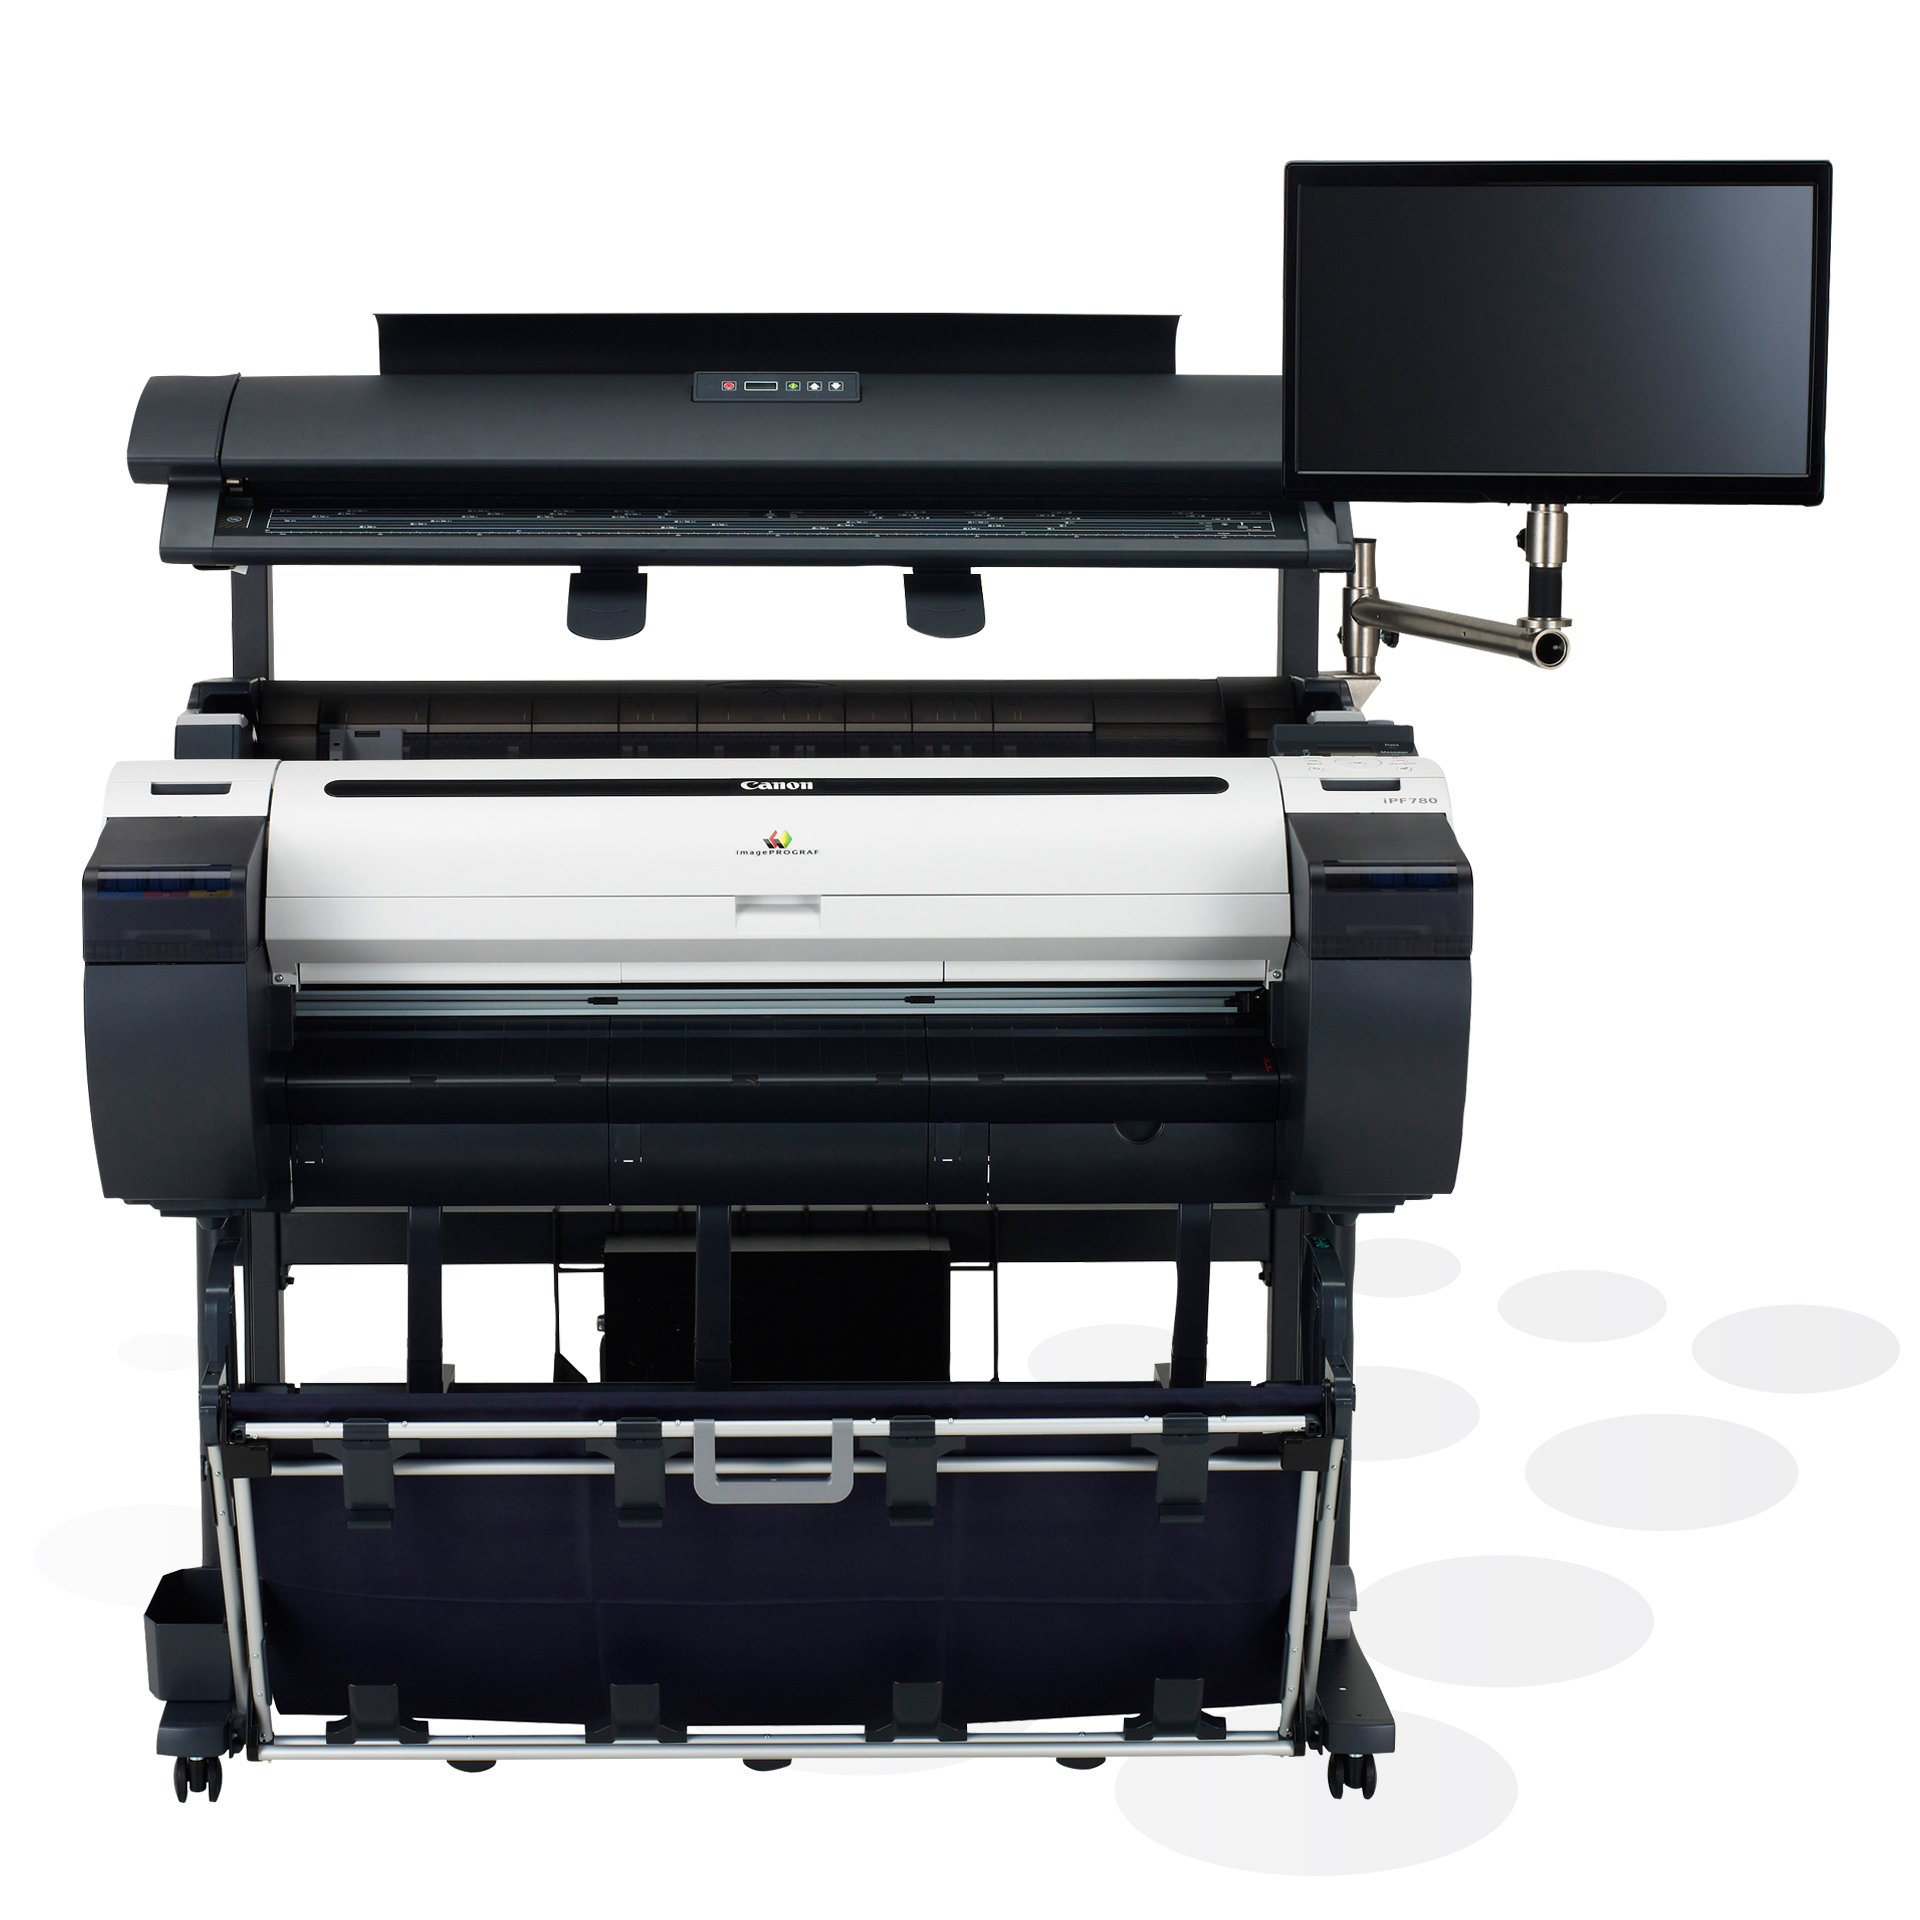 Canon imagePROGRAF iPF780 M40 MFP Frontansicht